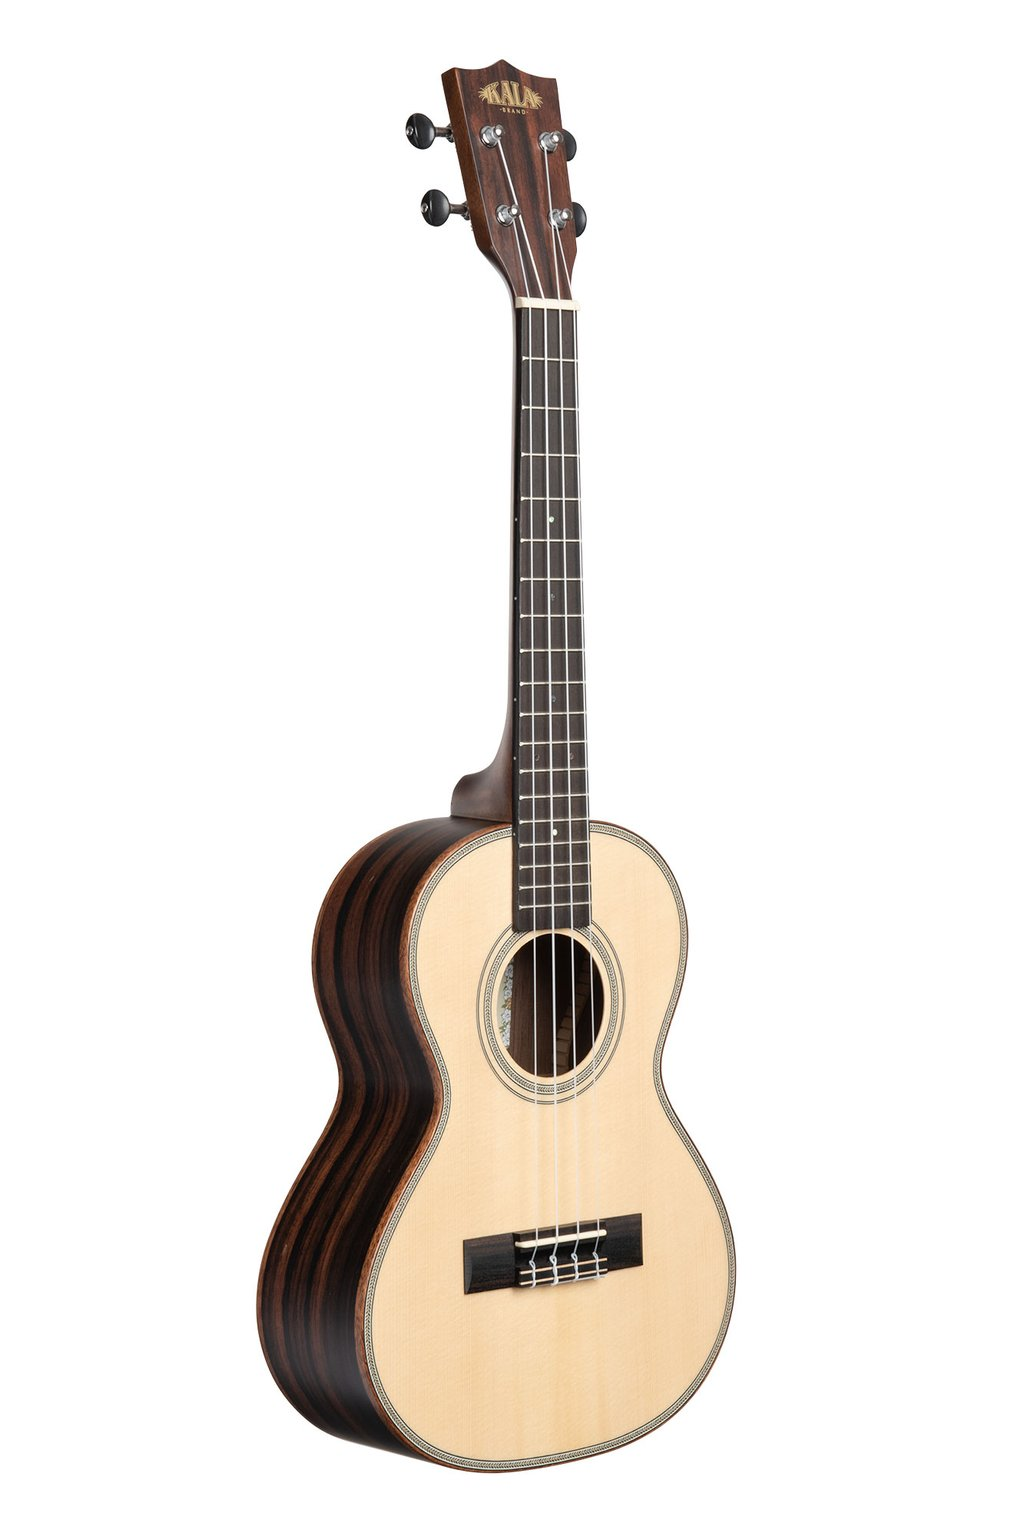 Kala KA-SSEBY-T Tenor Ukulele Solid Spruce Top with Striped ebony back and sides Ukulele Trading Co Australia